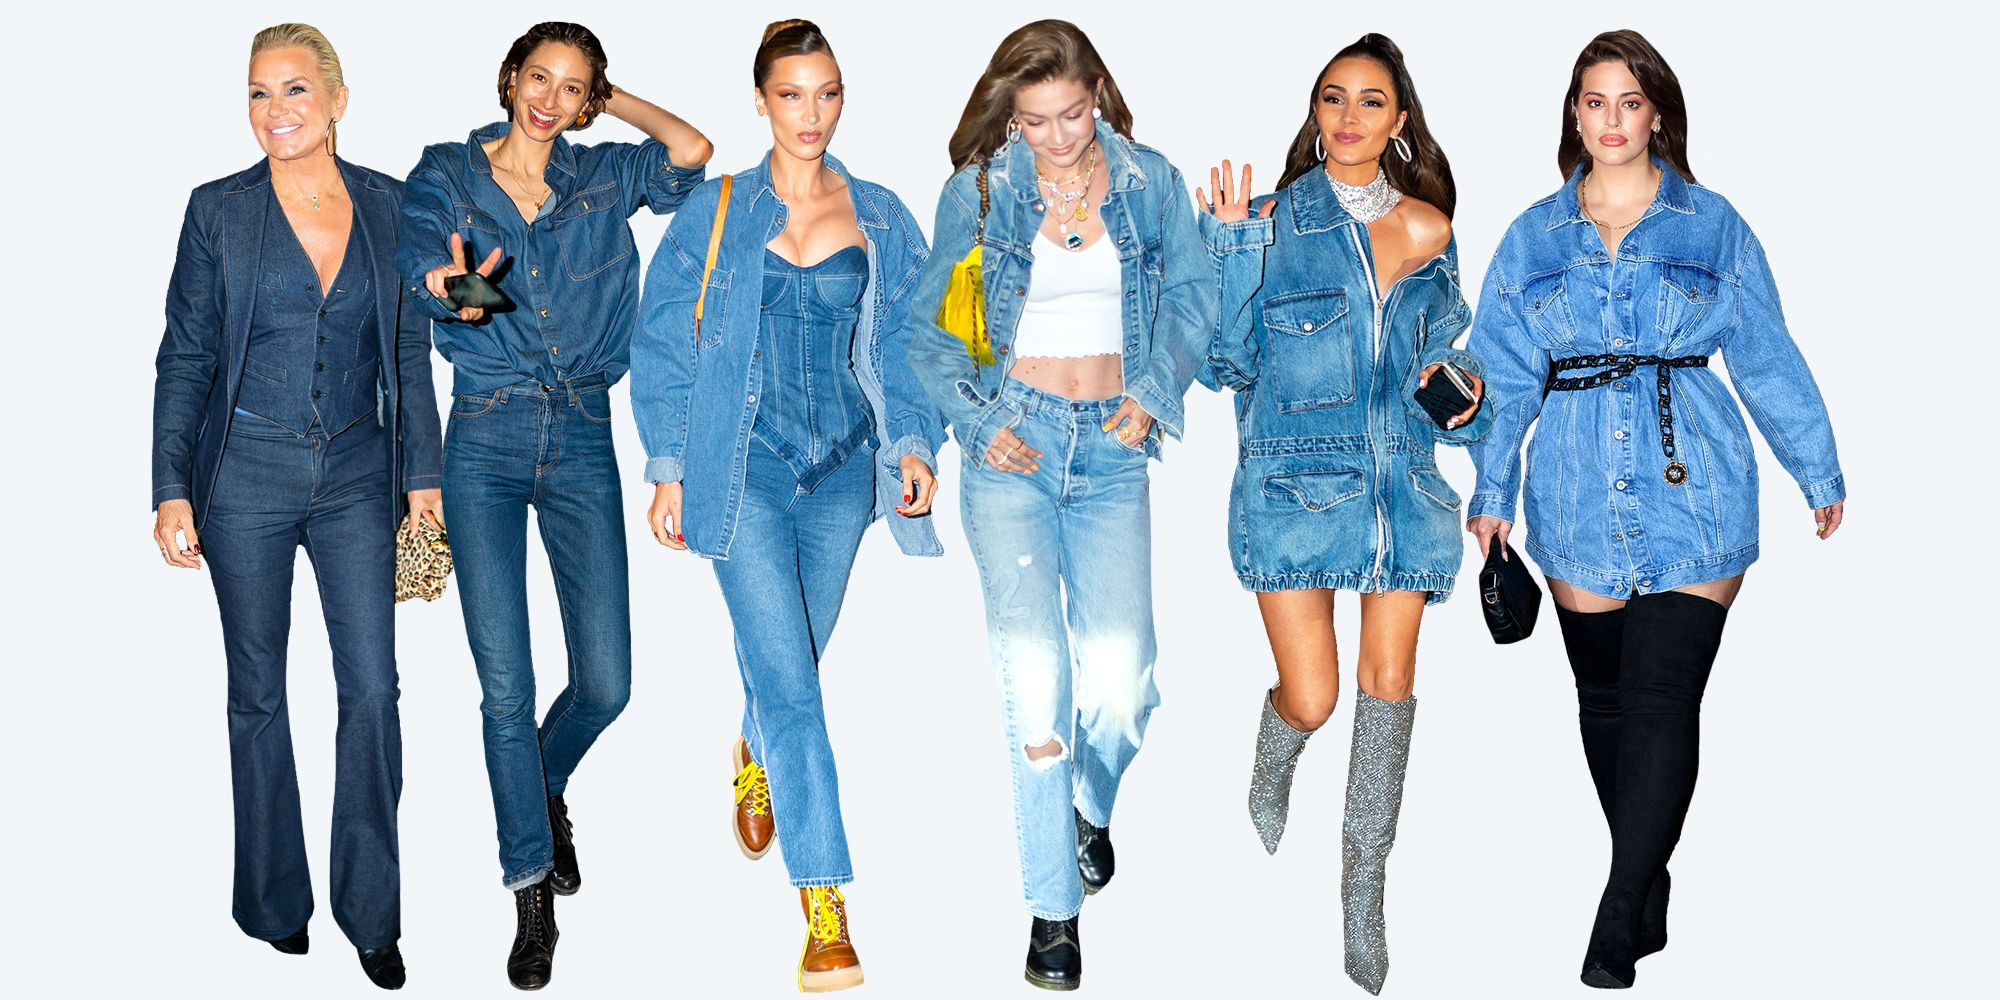 eedfa44ec03 What Gigi Hadid s Denim-Themed 24th Birthday Party Was Like - What Taylor  Swift and Every Guest Wore